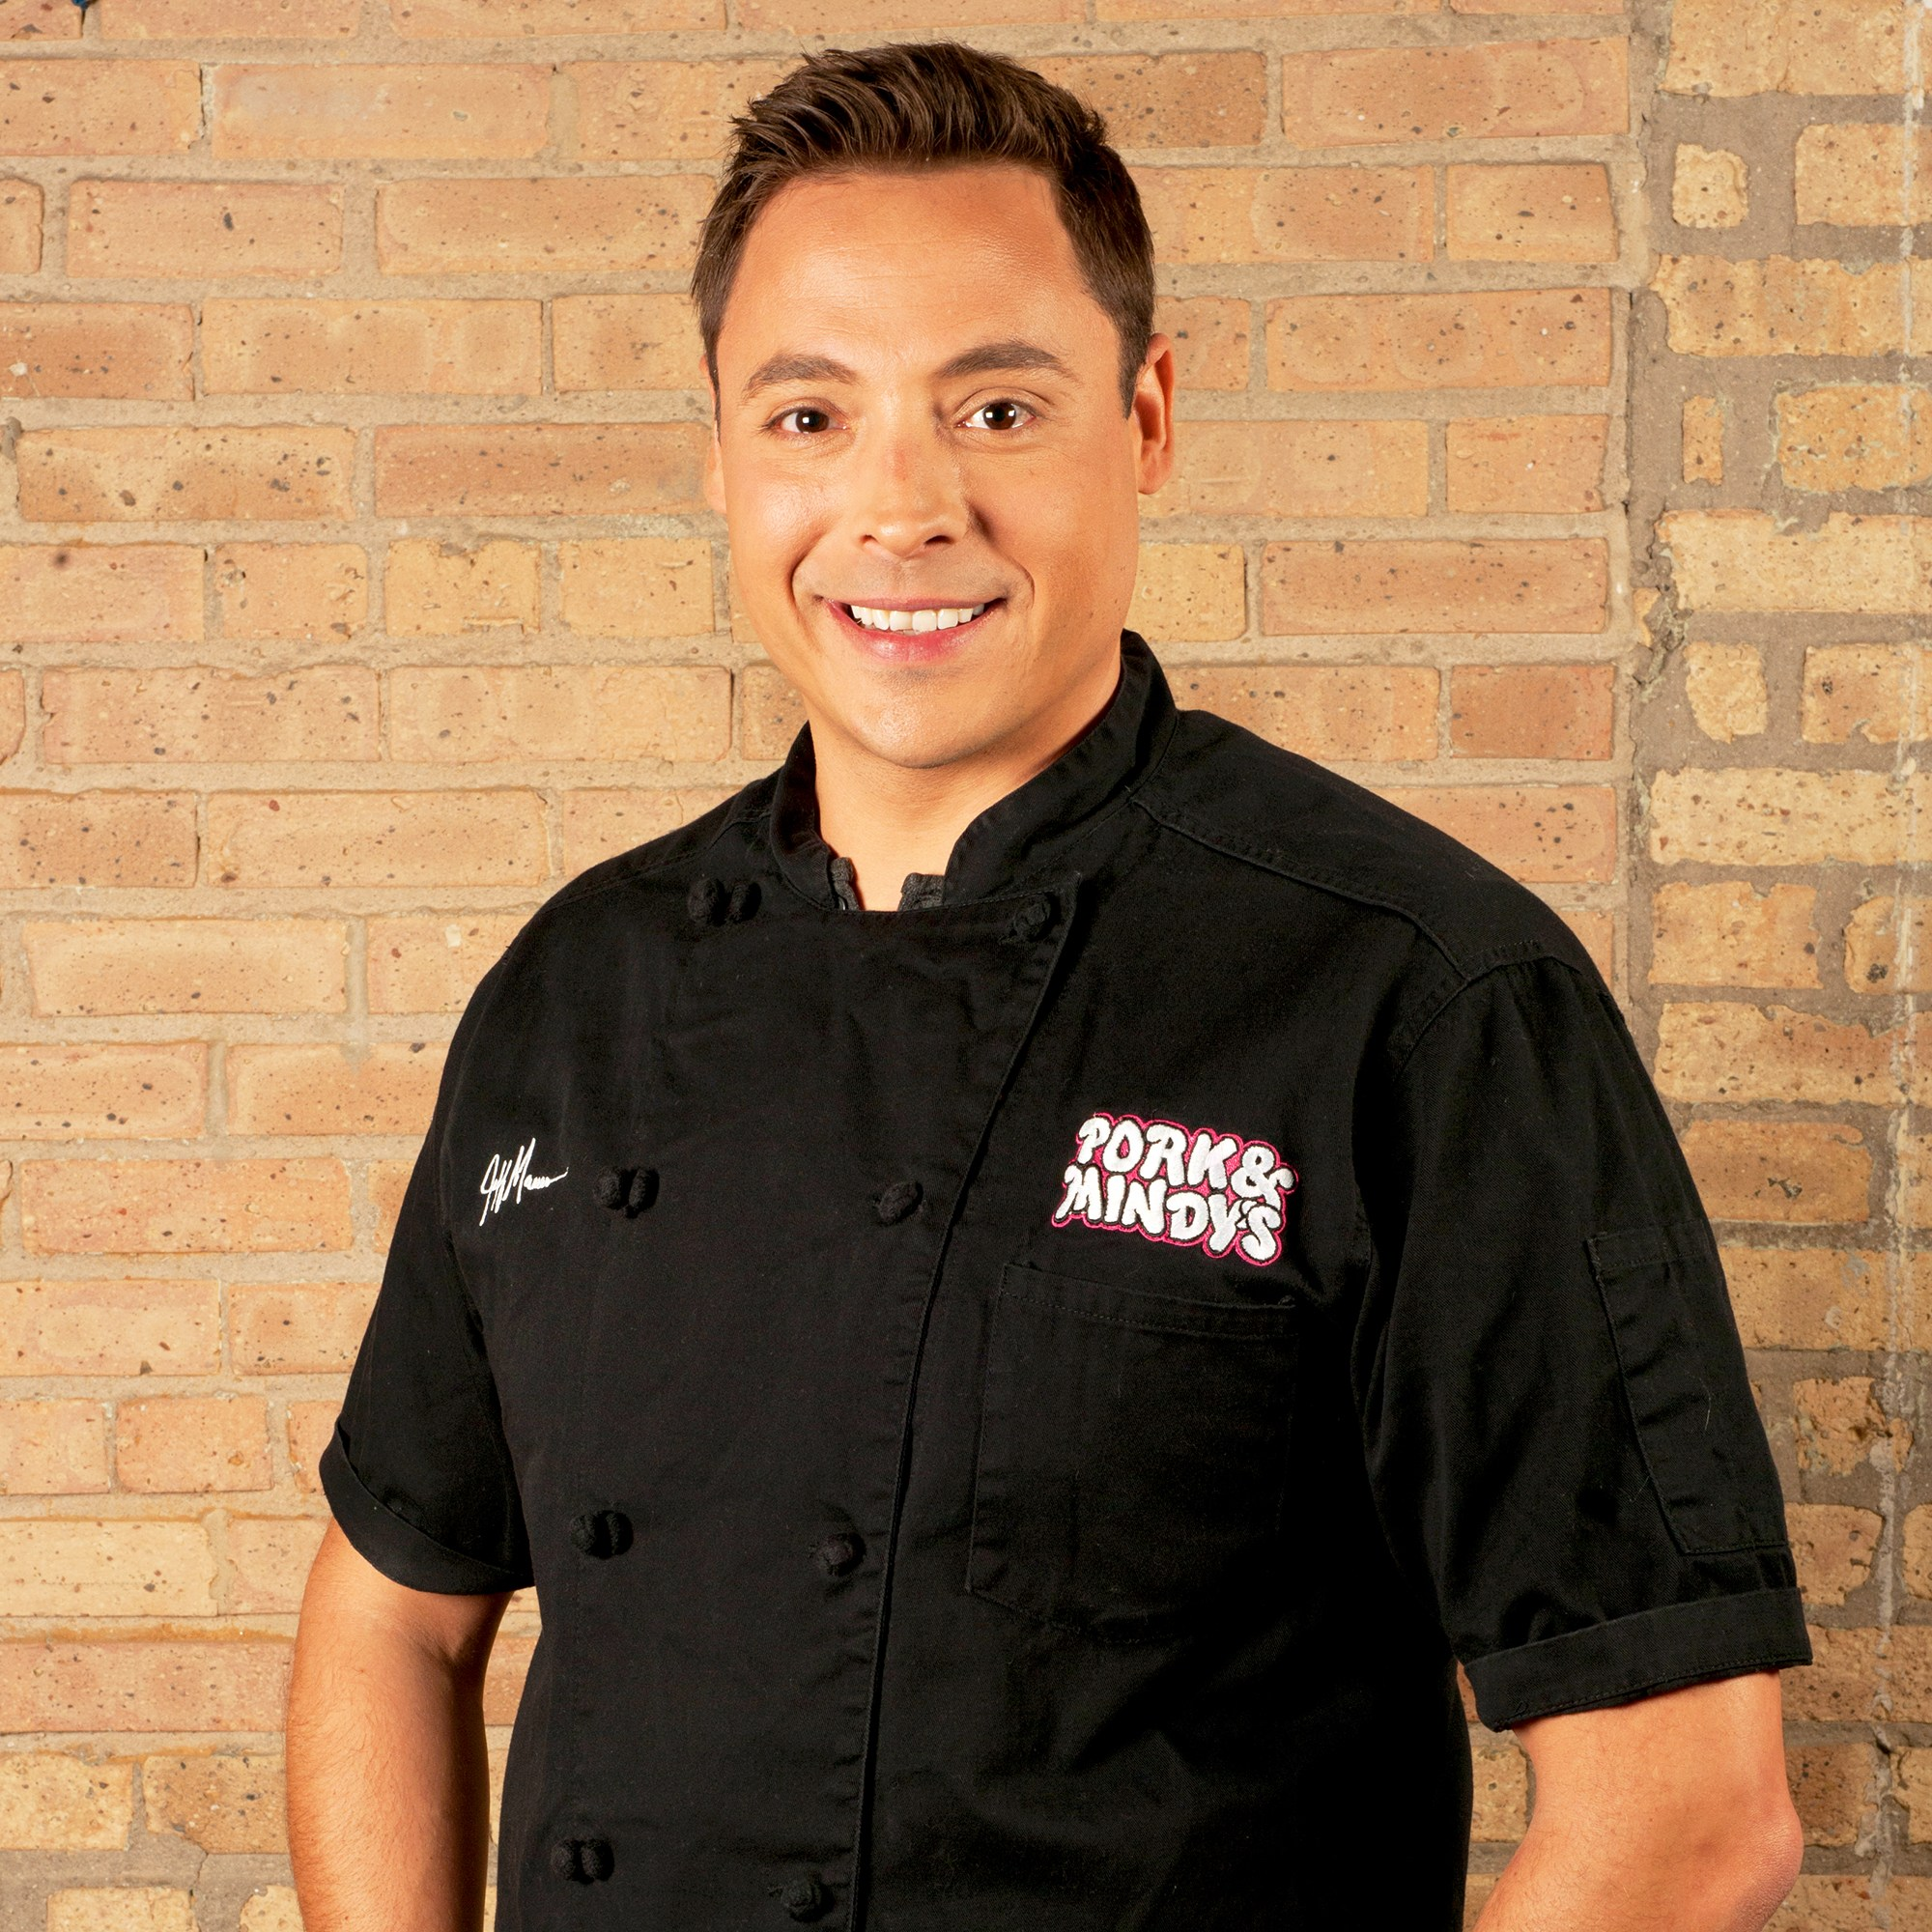 Chef Jeff Mauro